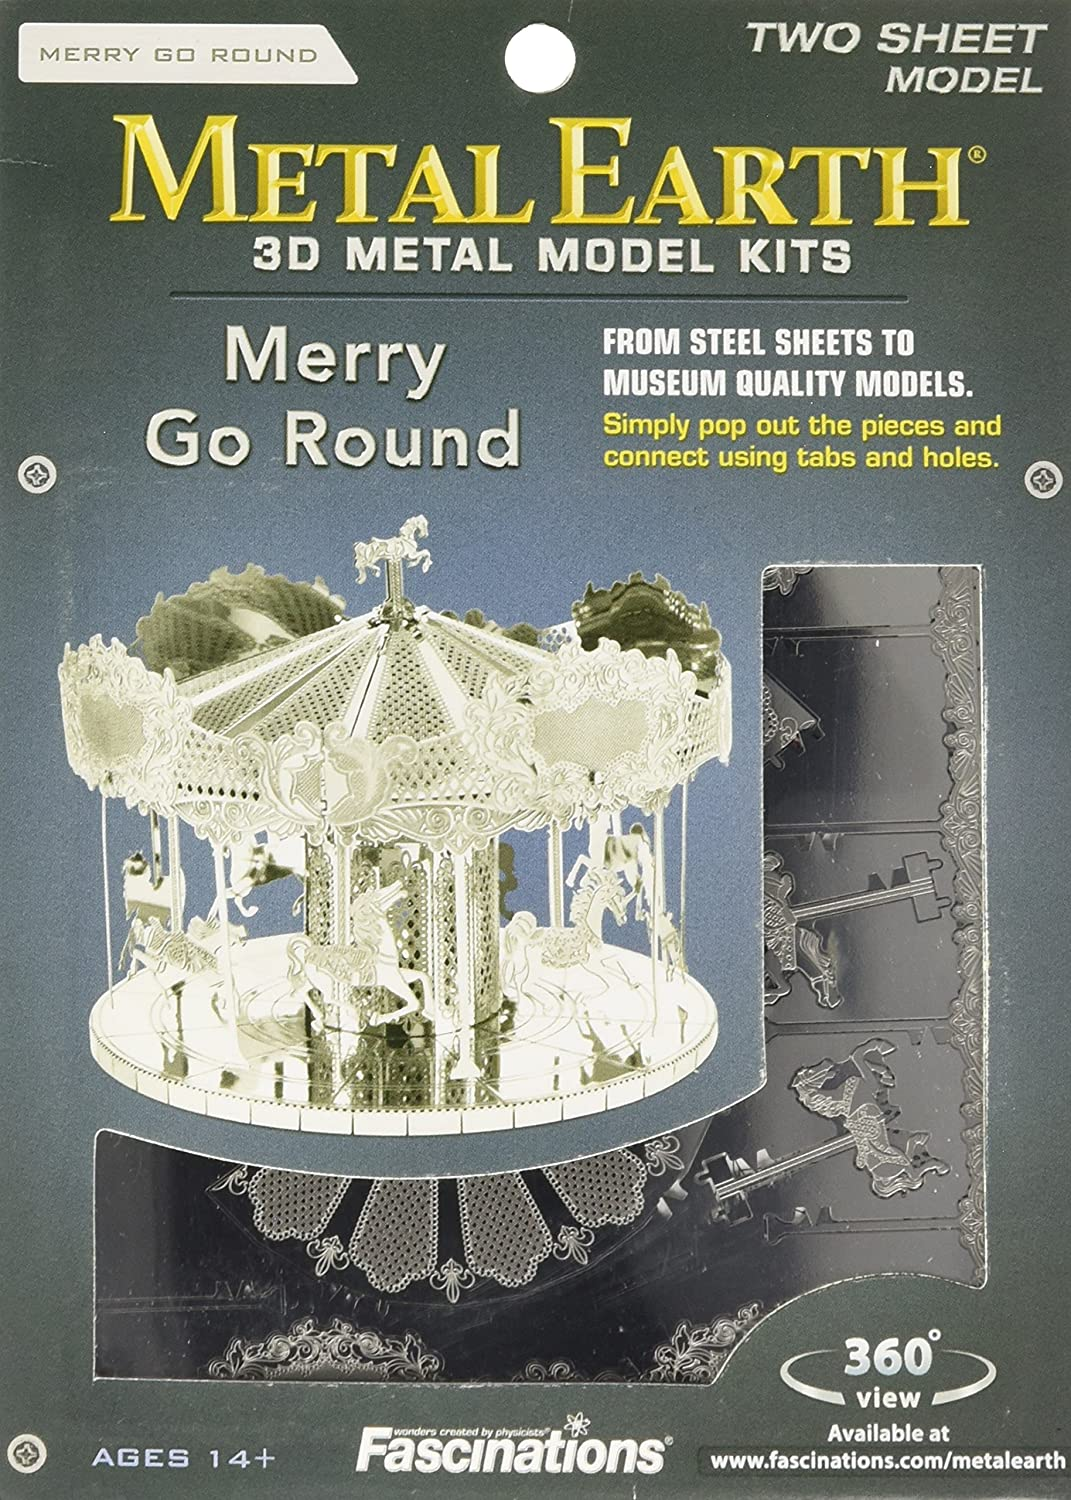 Fascinations Metal Earth 3D Laser Cut Model - Merry Go Round 91xwlAlPOOL